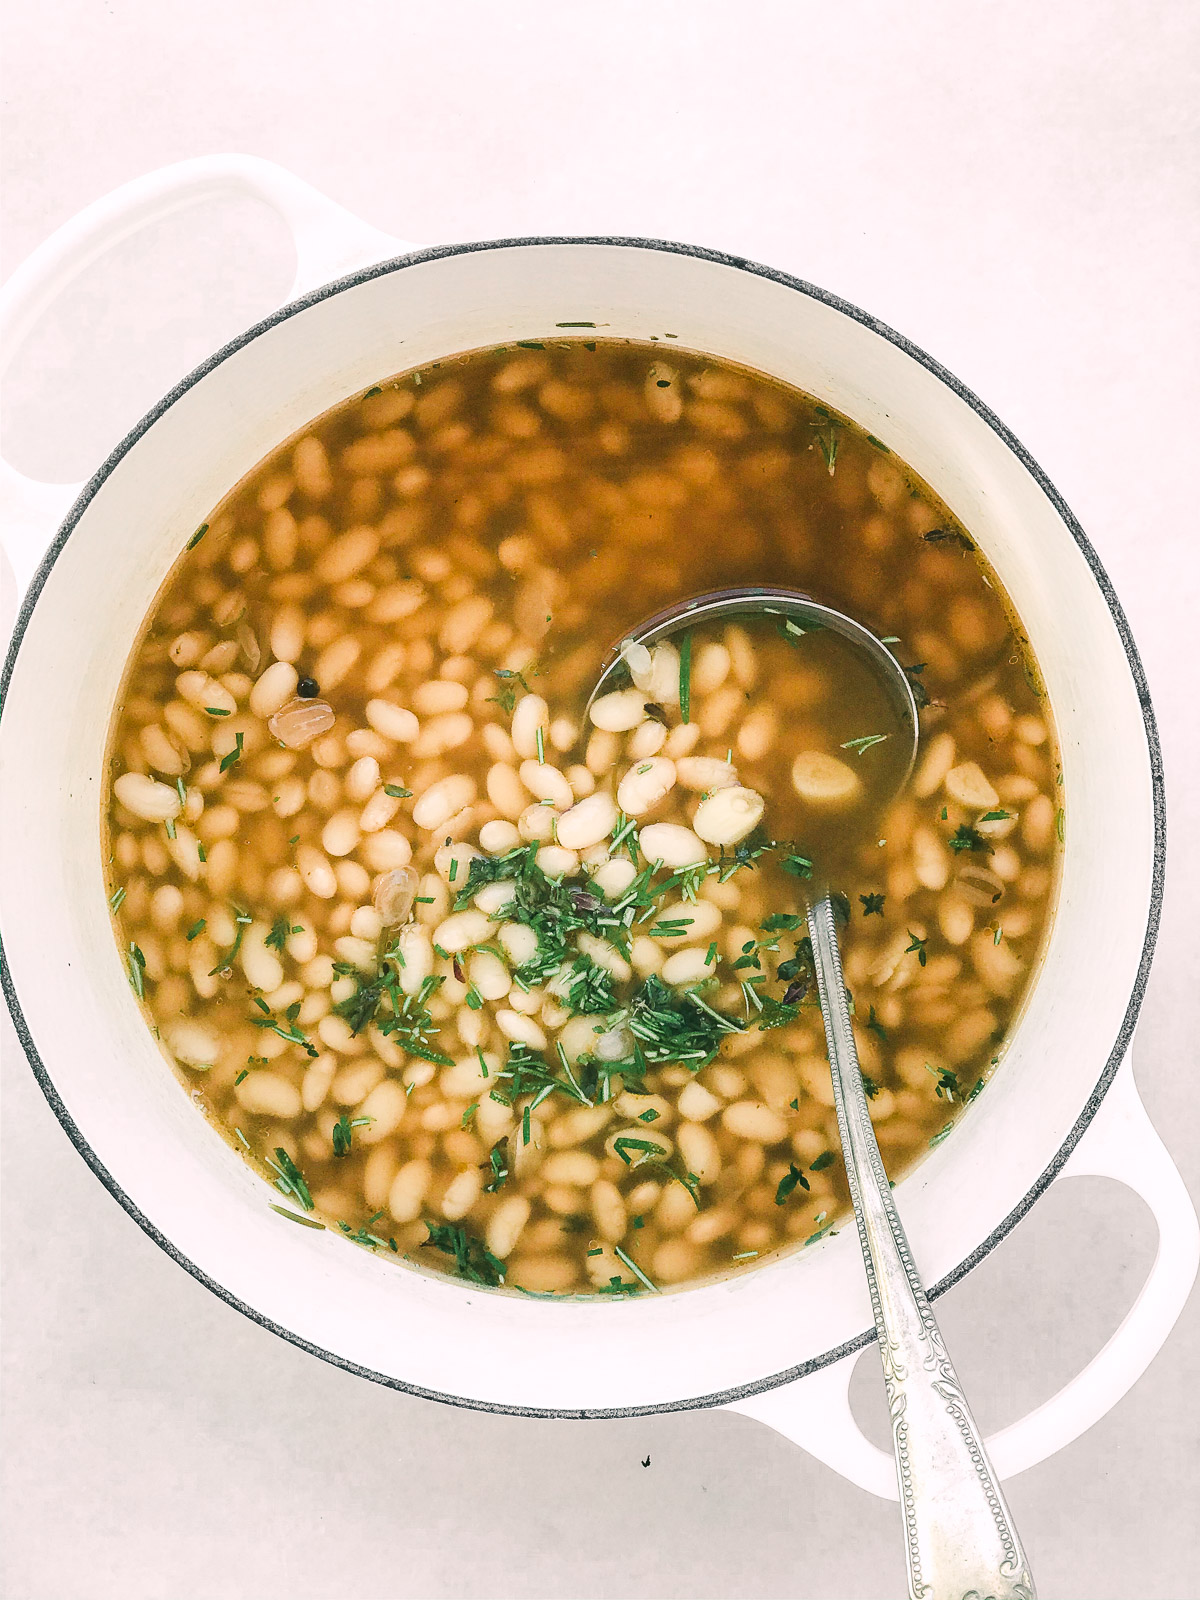 Great Northern beans cooked in an aromatic broth